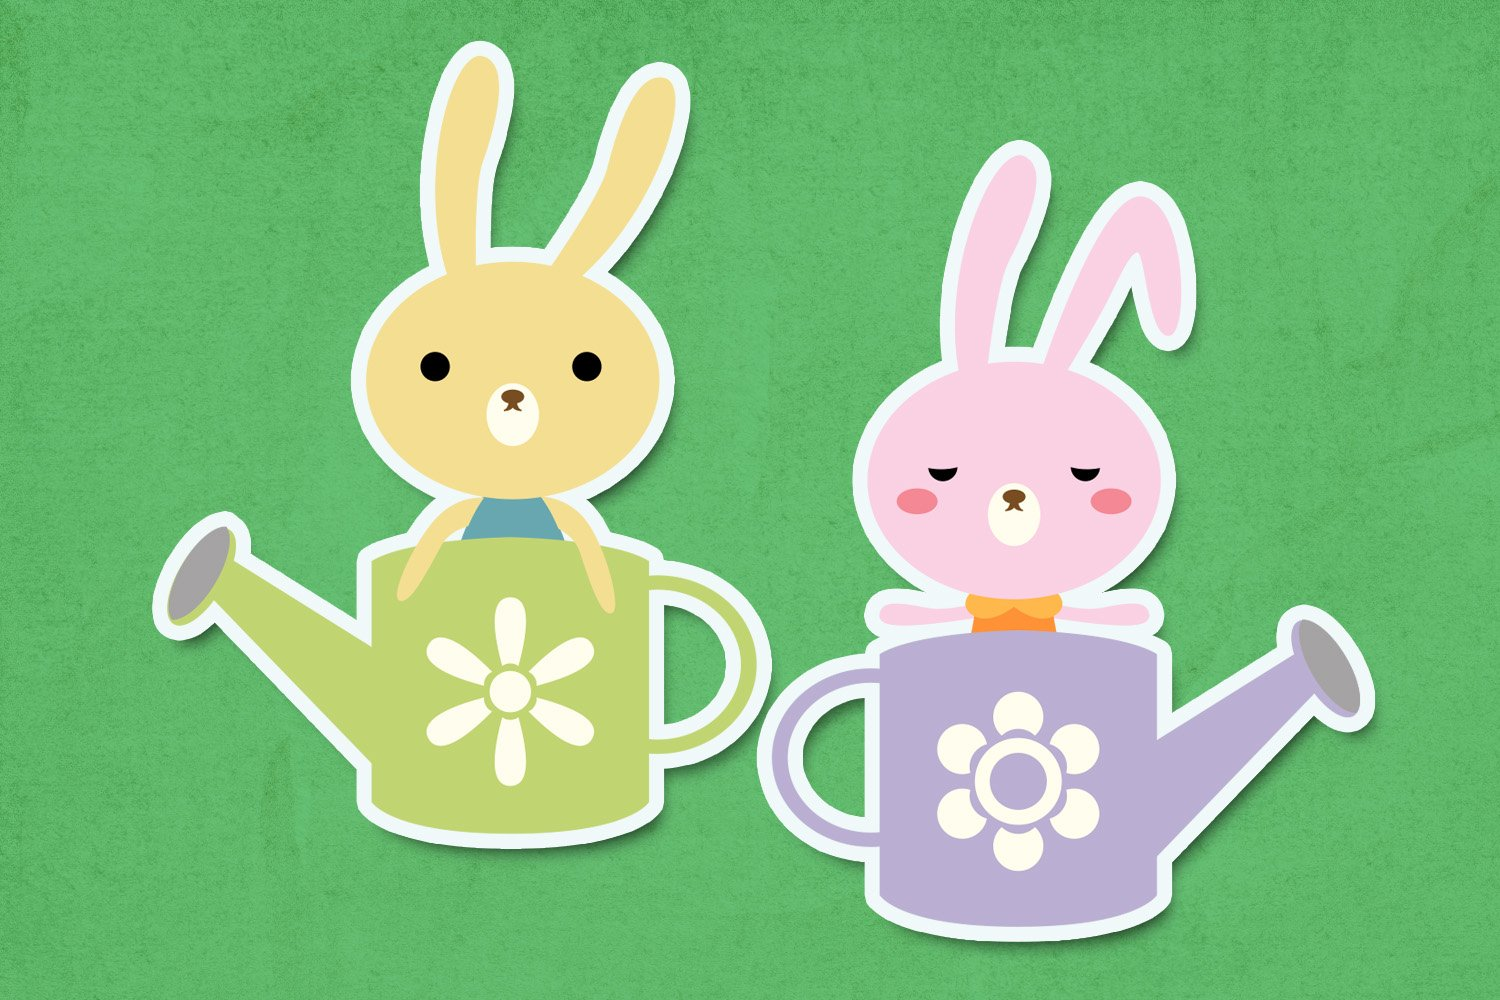 Spring bunny garden illustrations clip art example image 2